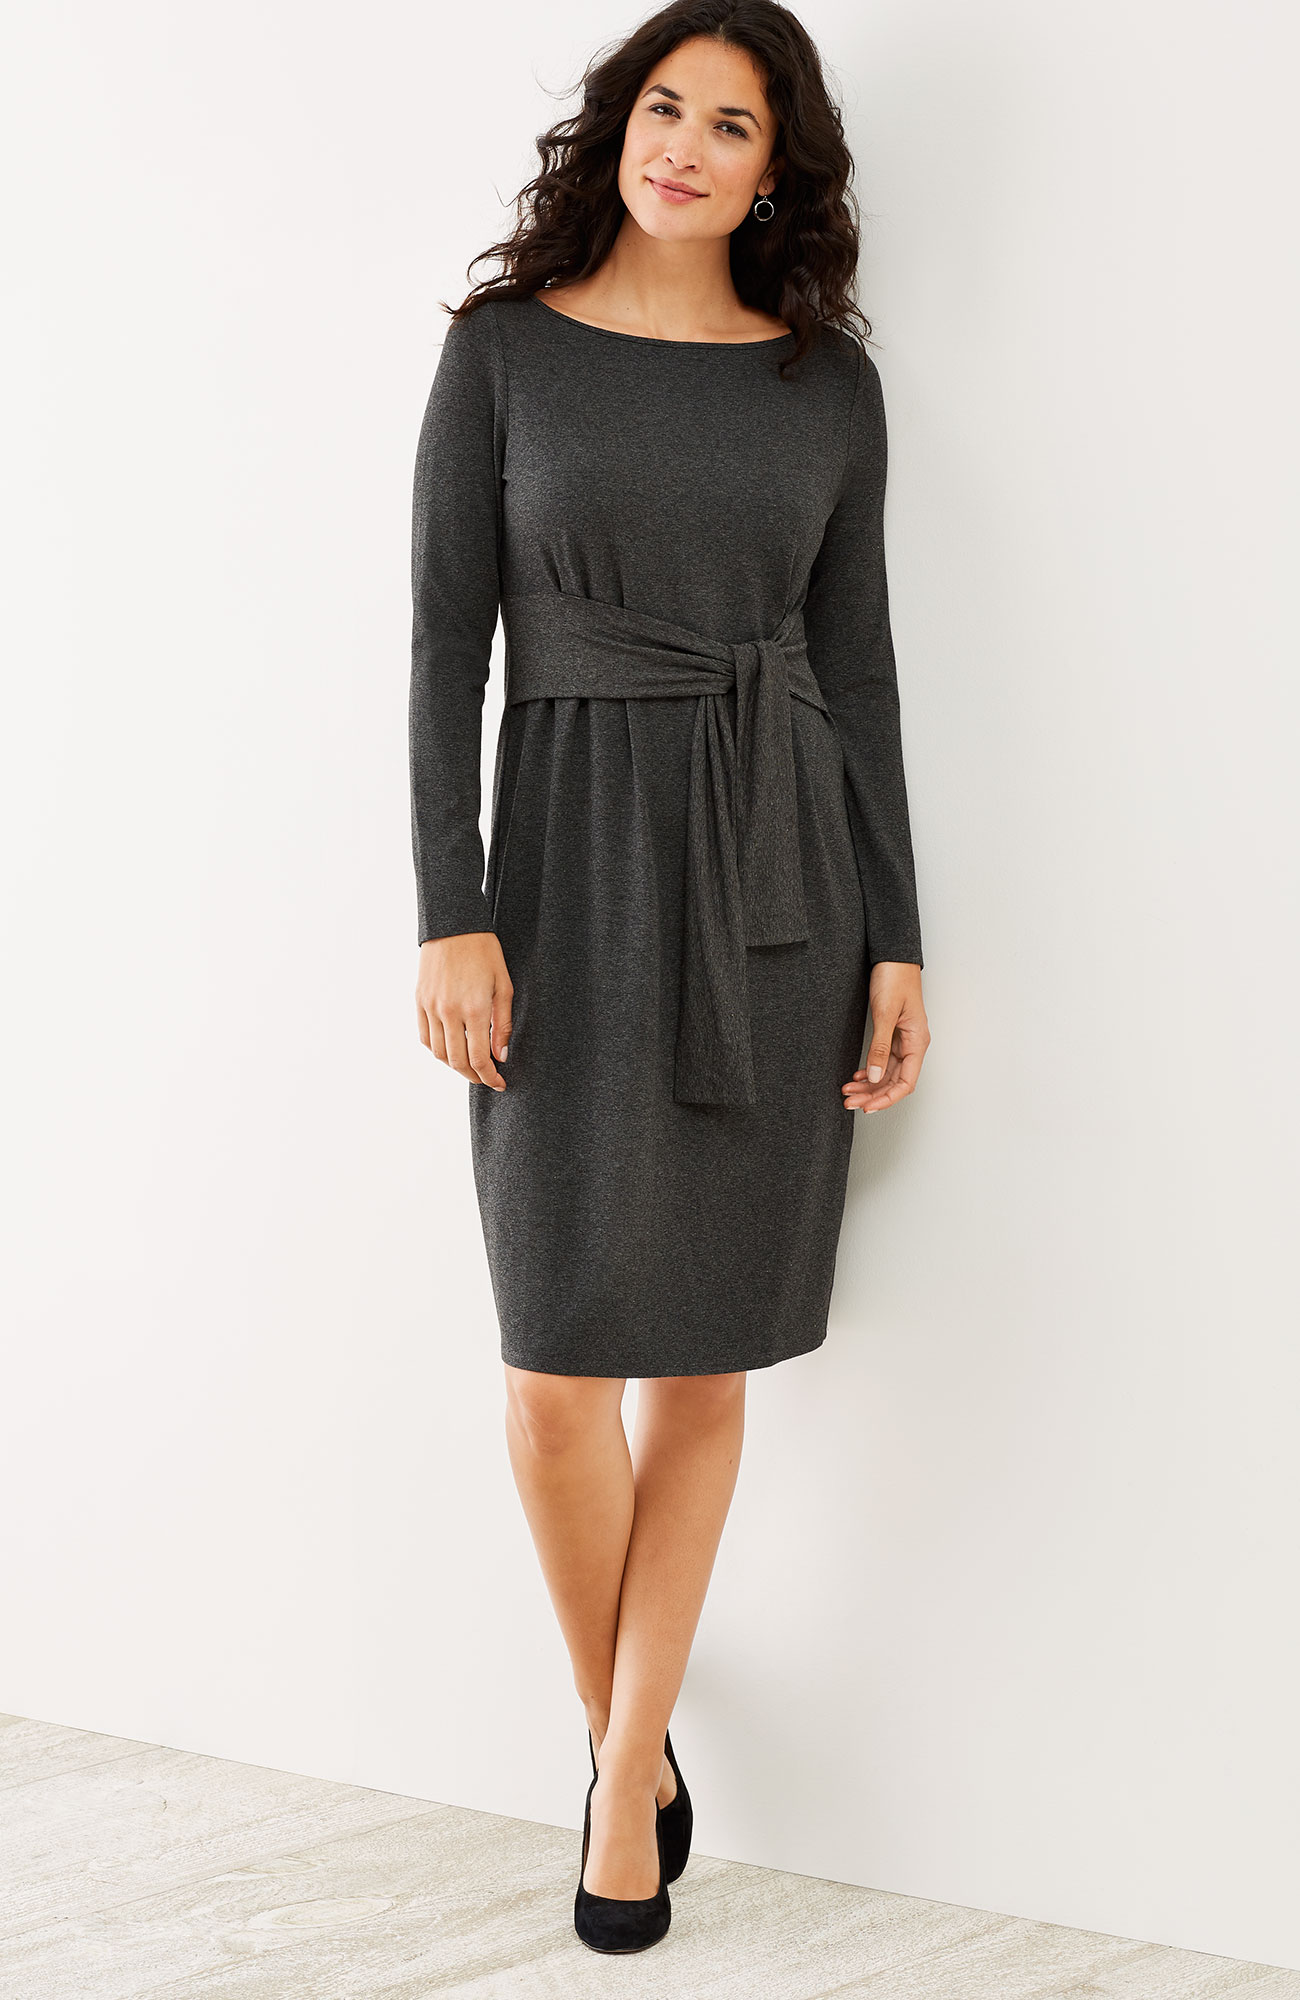 Wearever tie-front dress